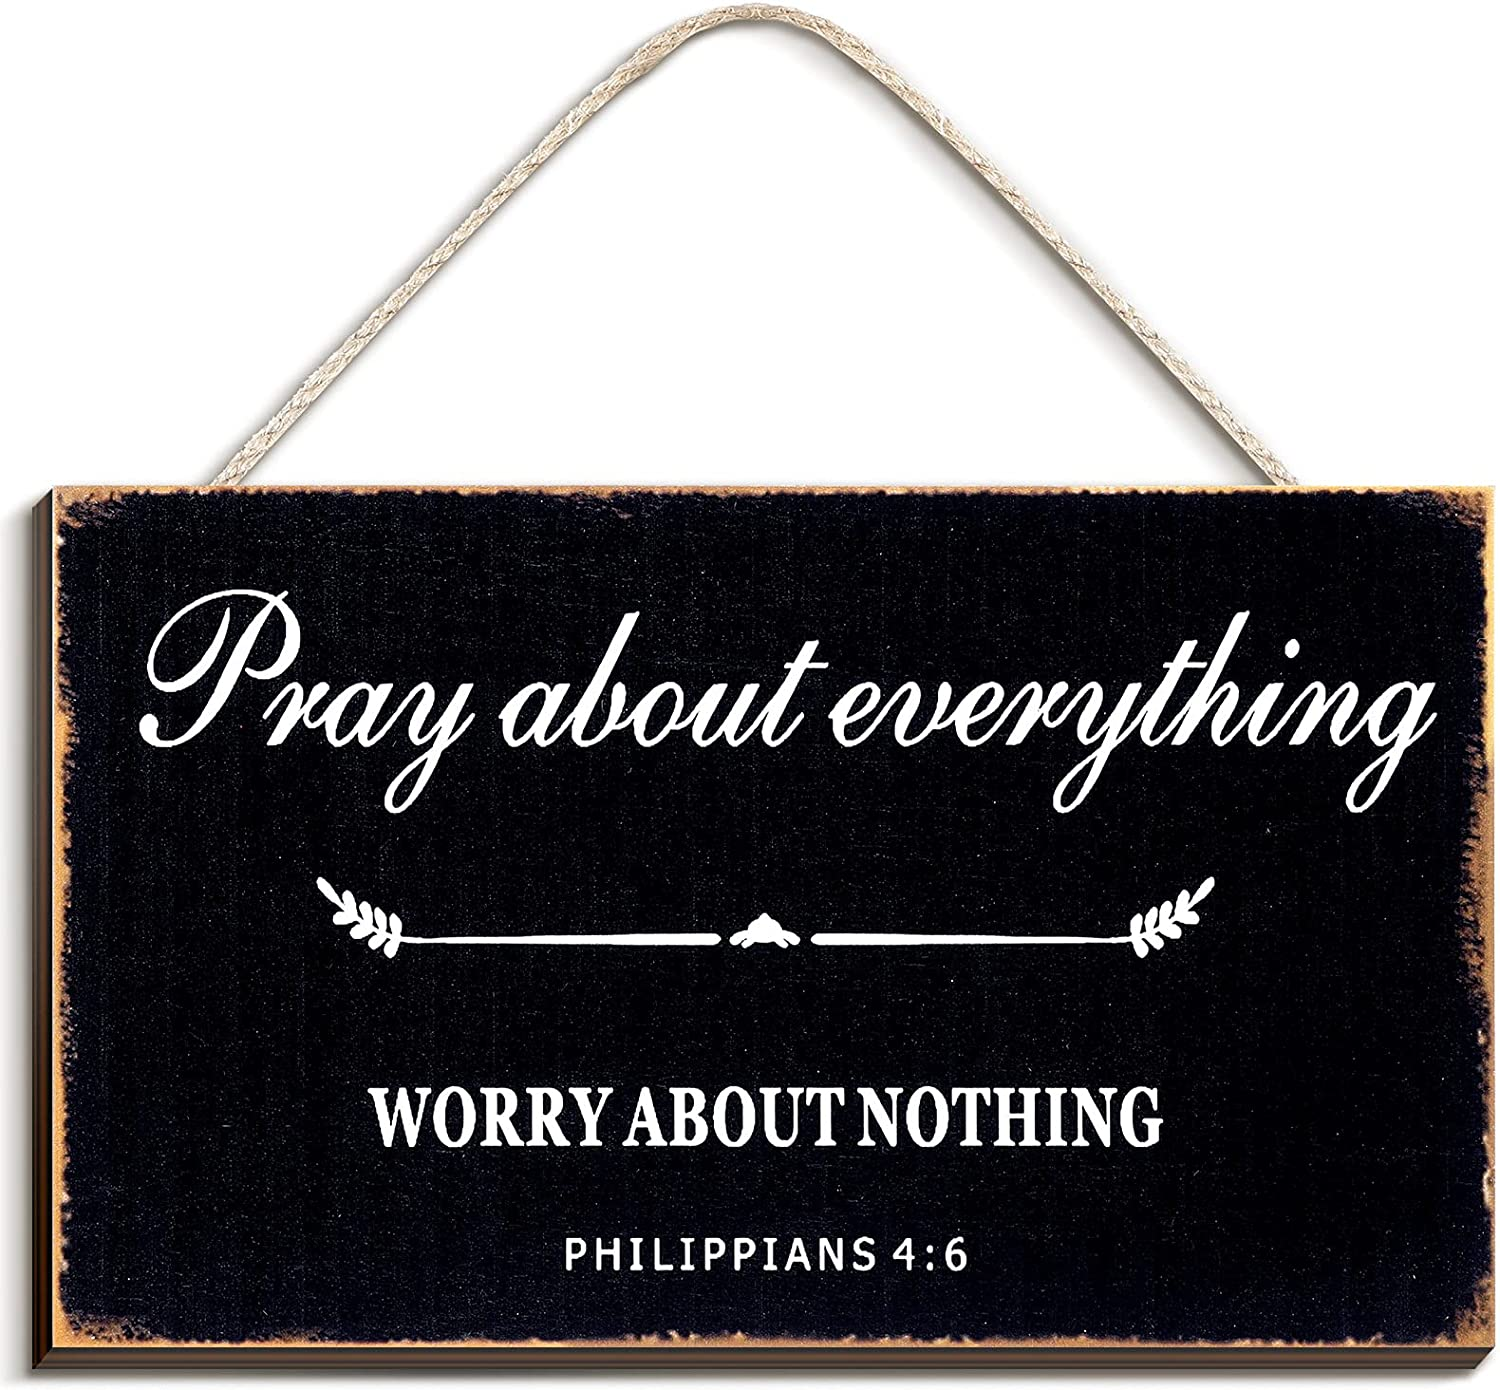 Bible Verse Wood Sign Farmhouse Style Wall Decor Pray About Everything Worry About Nothing Wood Wall Sign, 9.5 x 5.5 Inch (Black)